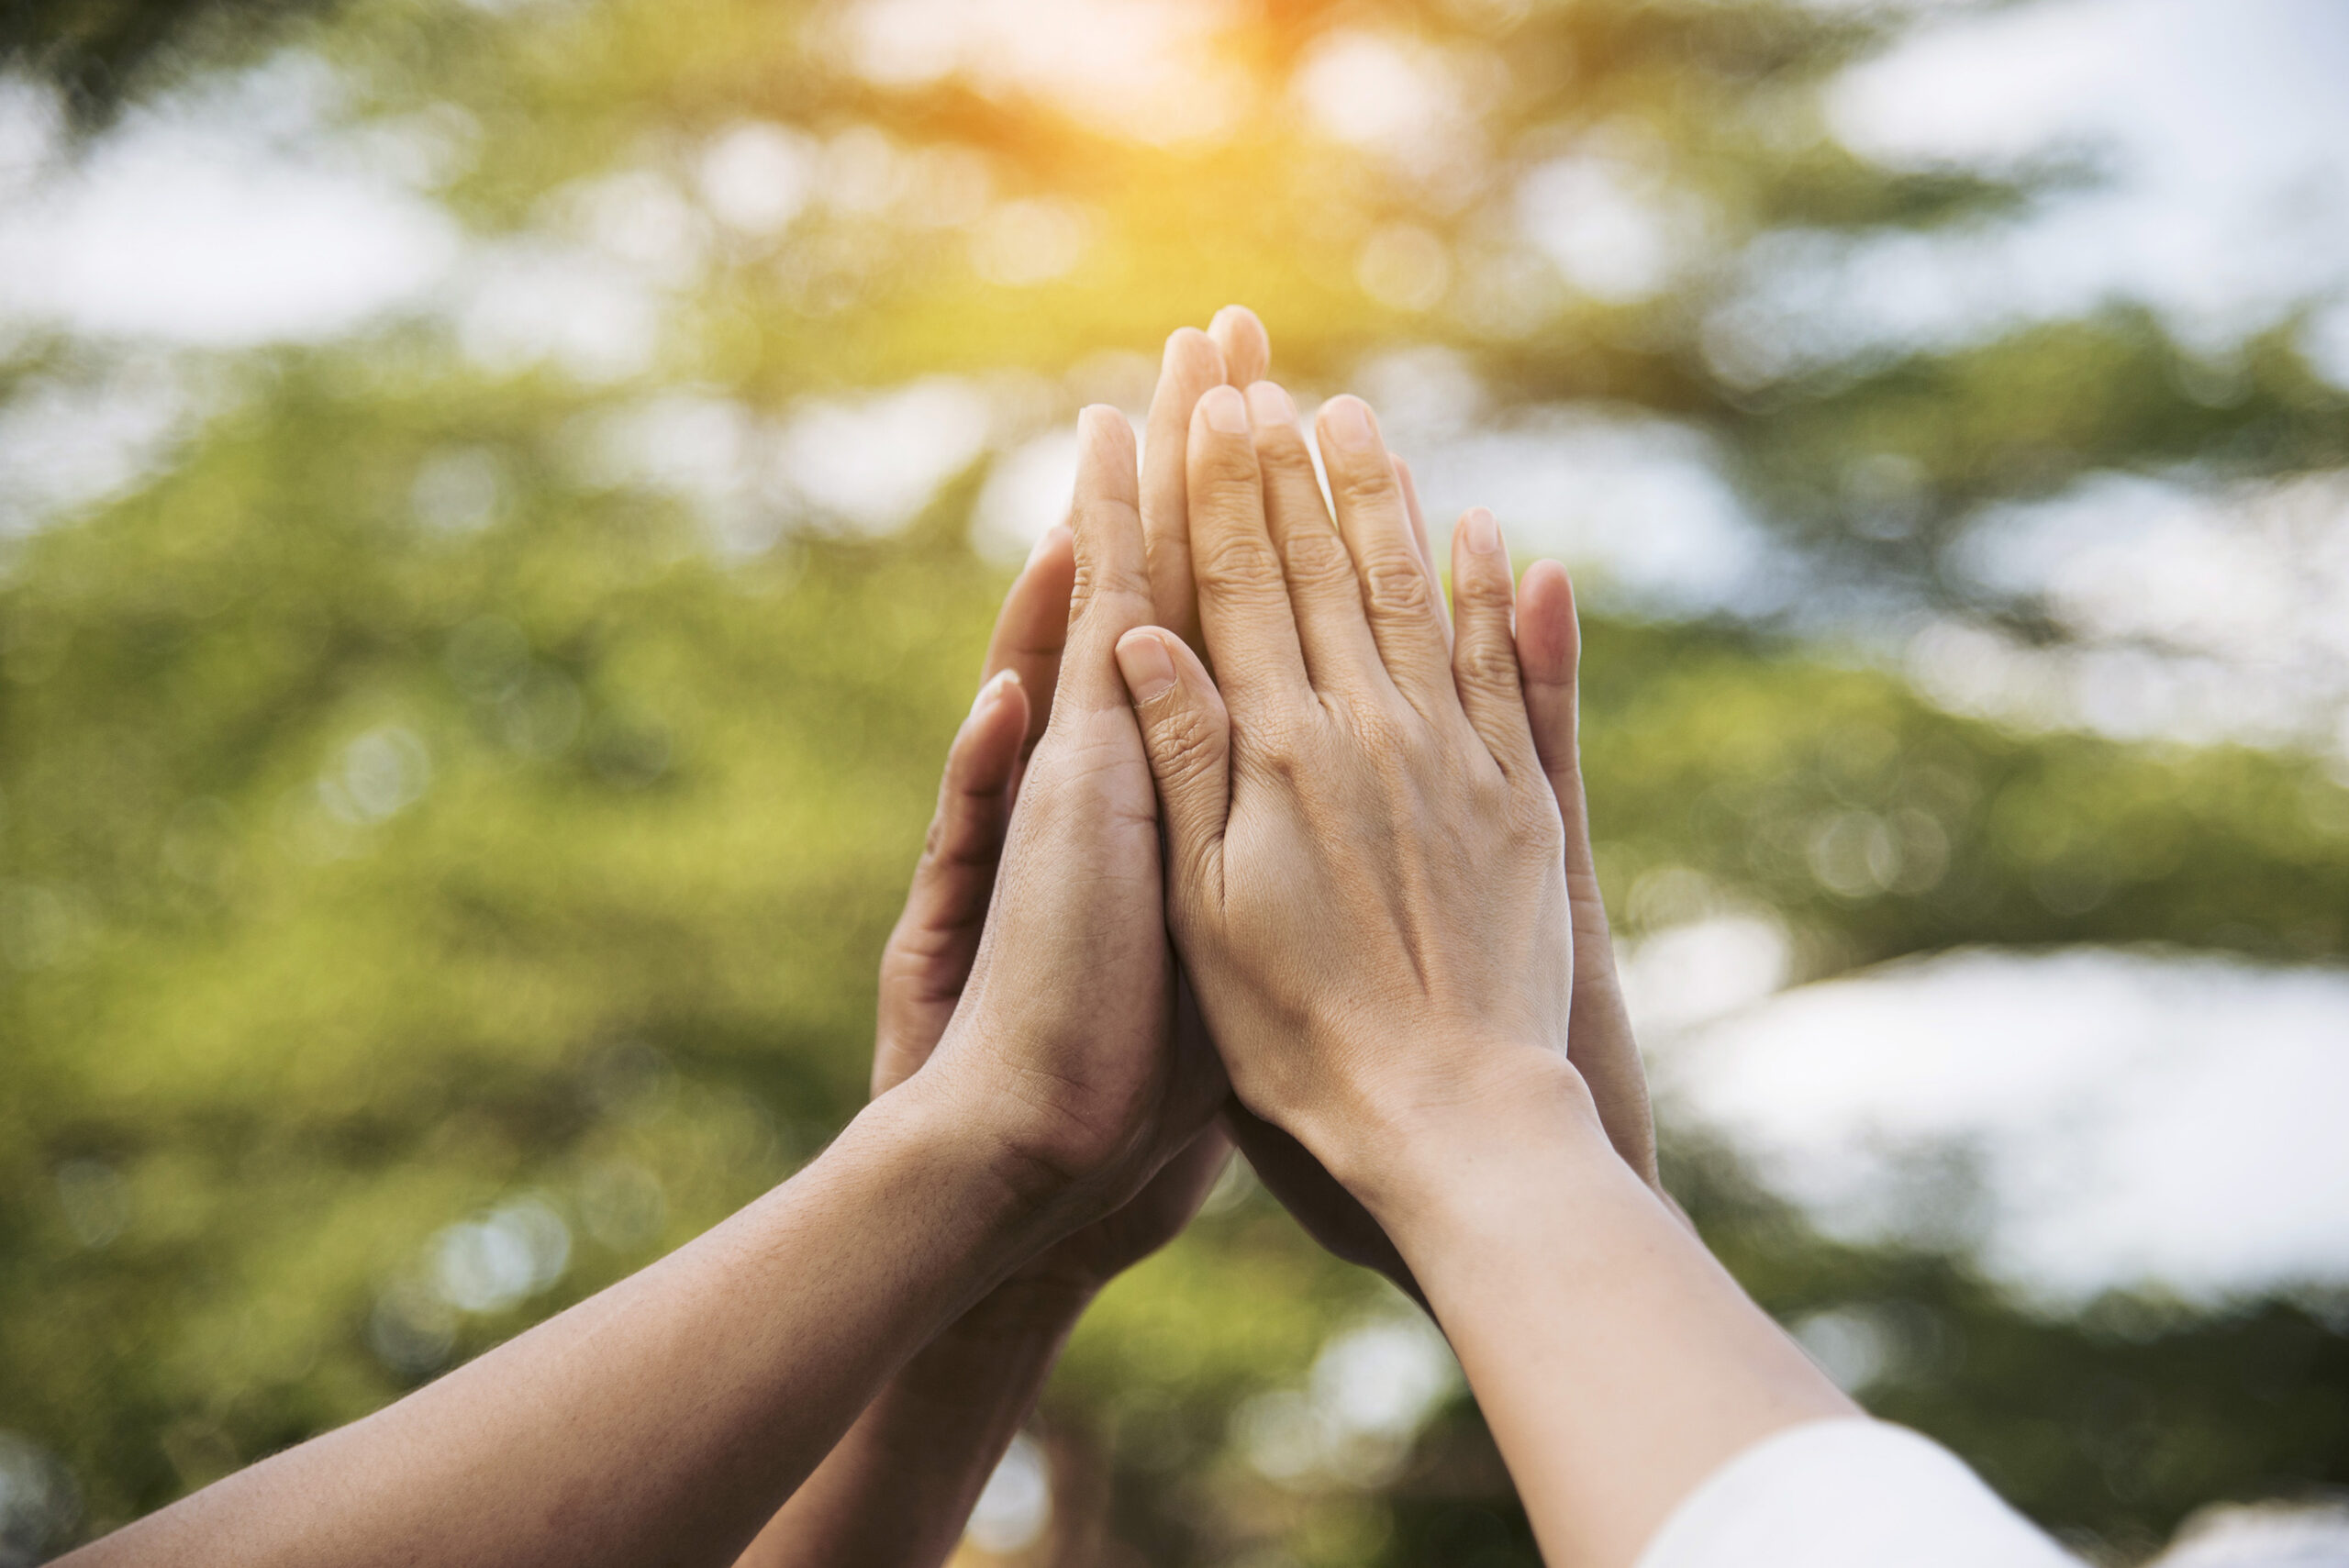 A close up of hands in a group high-five.